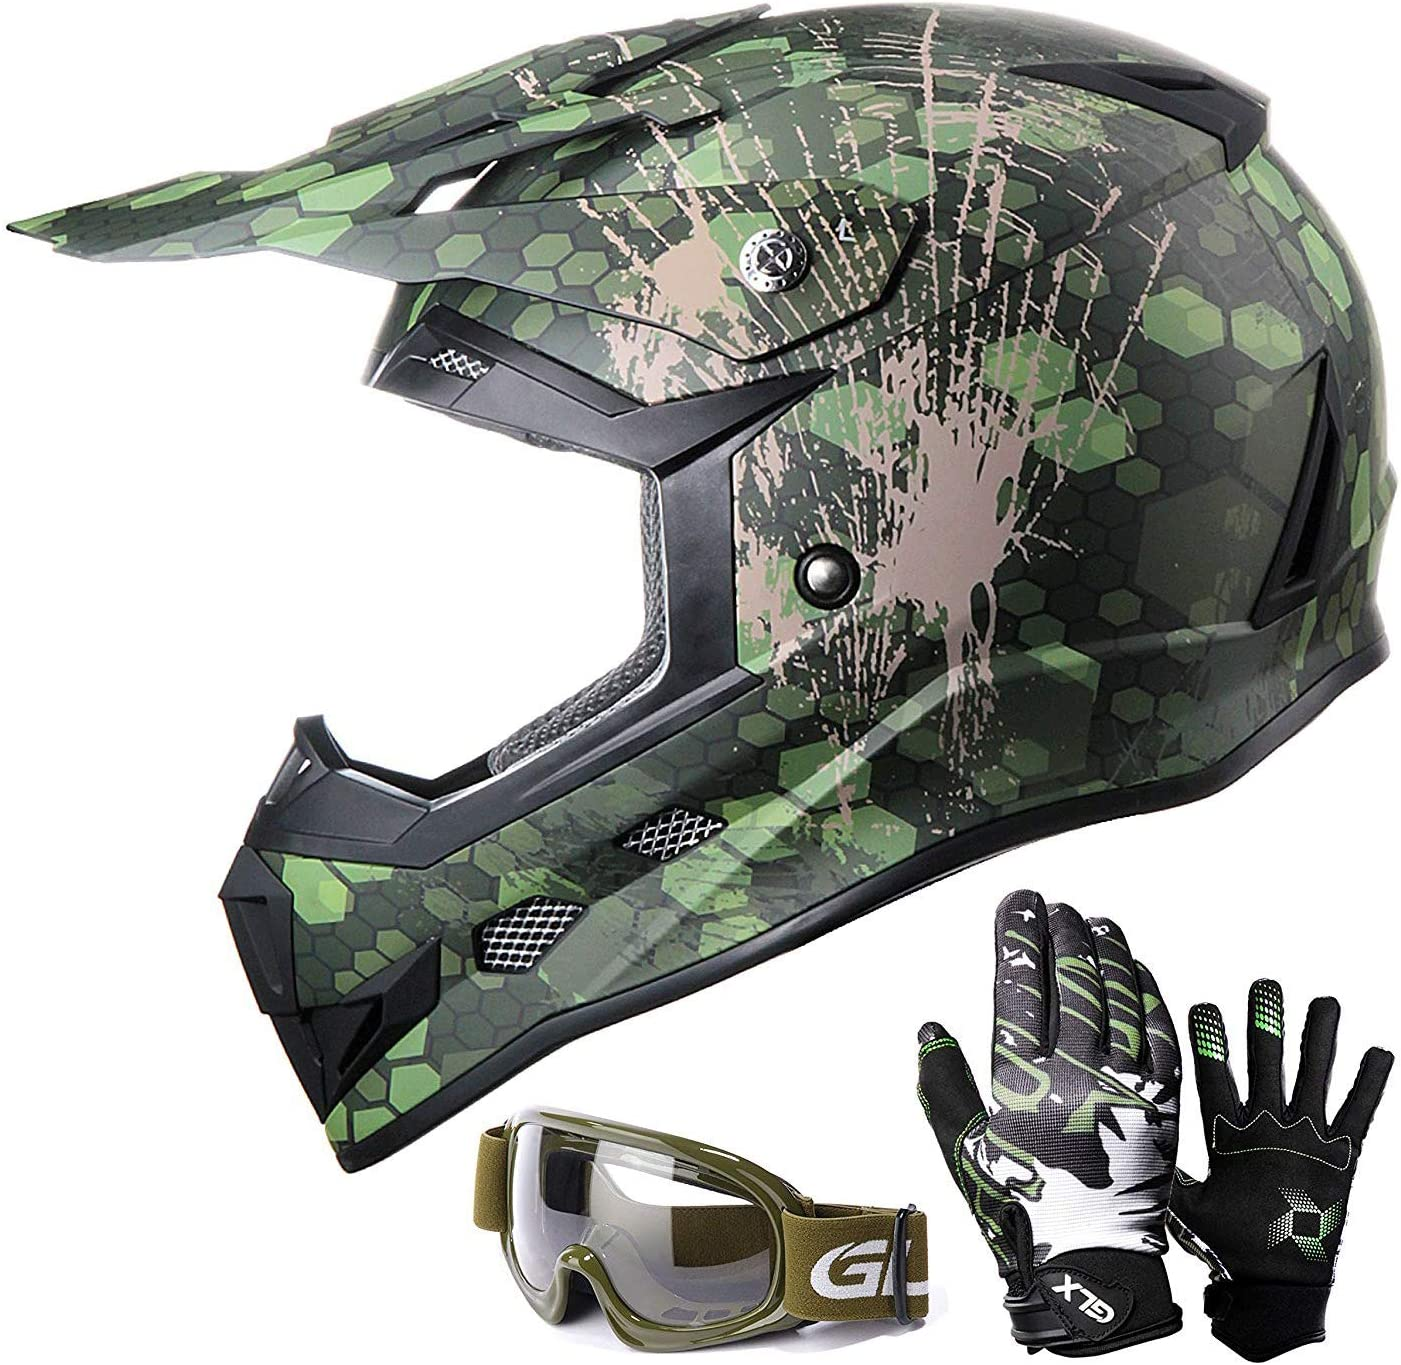 GLX Youth Motocross Helmet